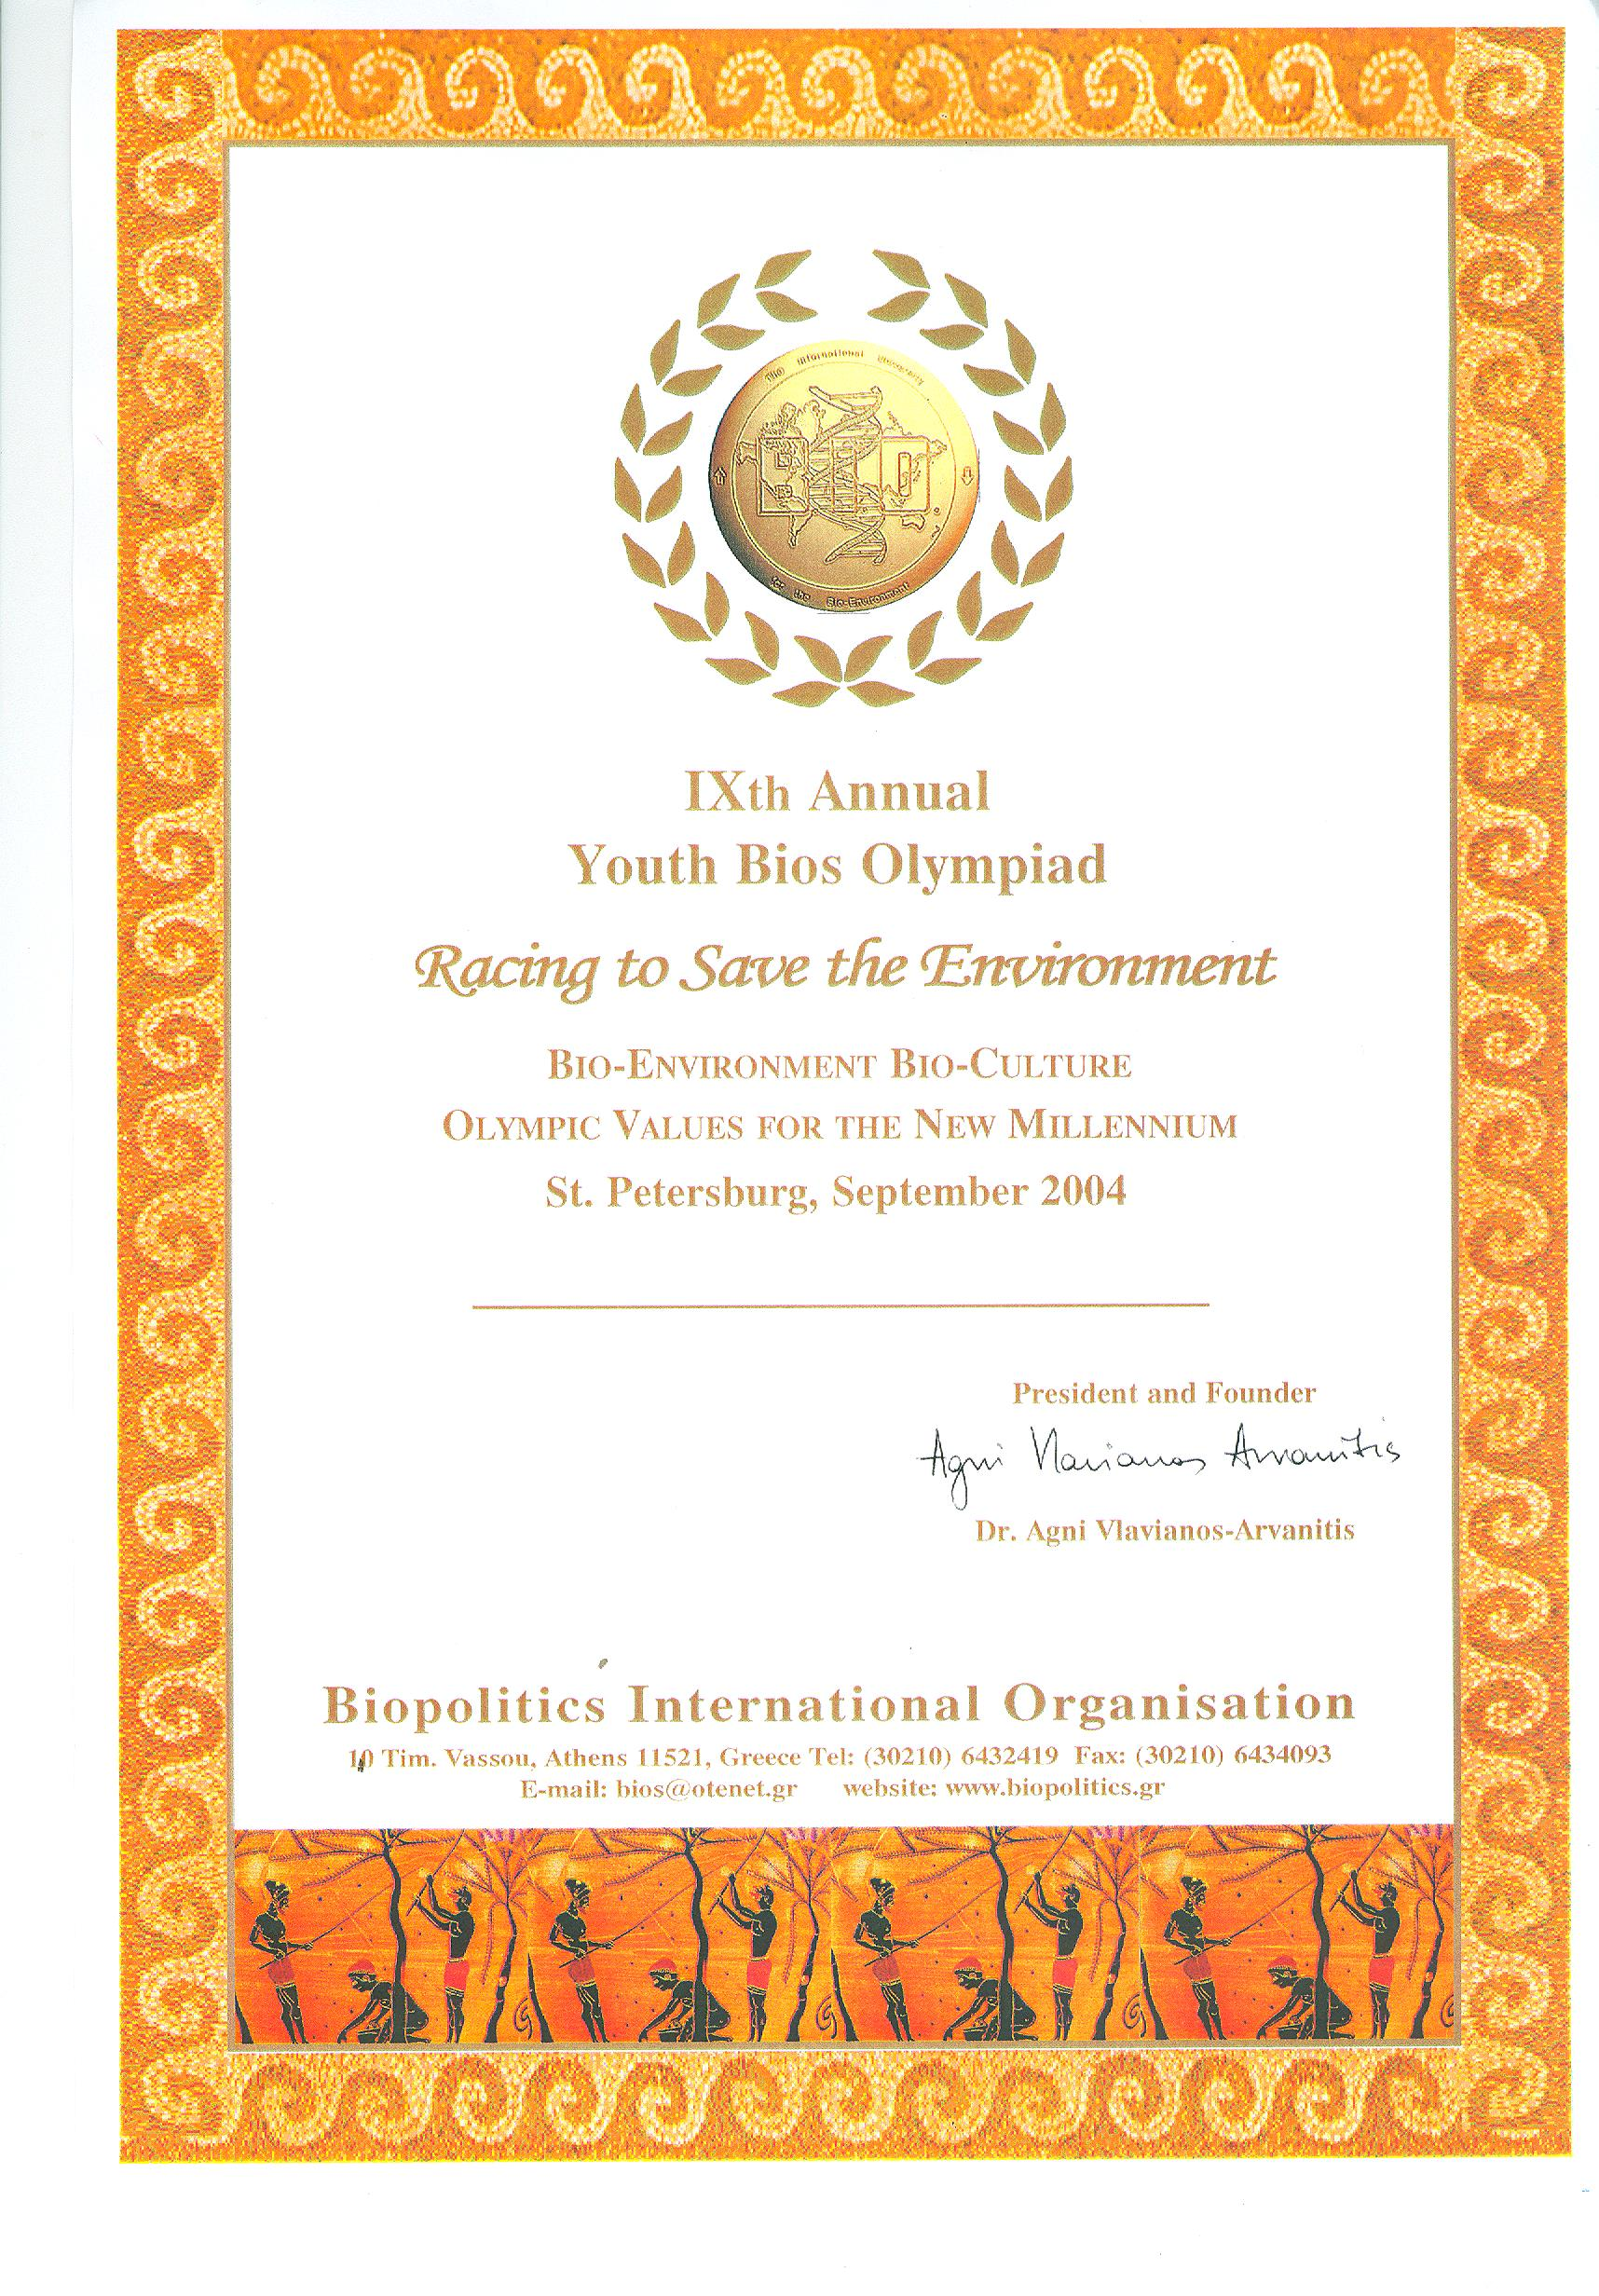 9th Youth Bios Olympiad, St. Petersburg, Russia